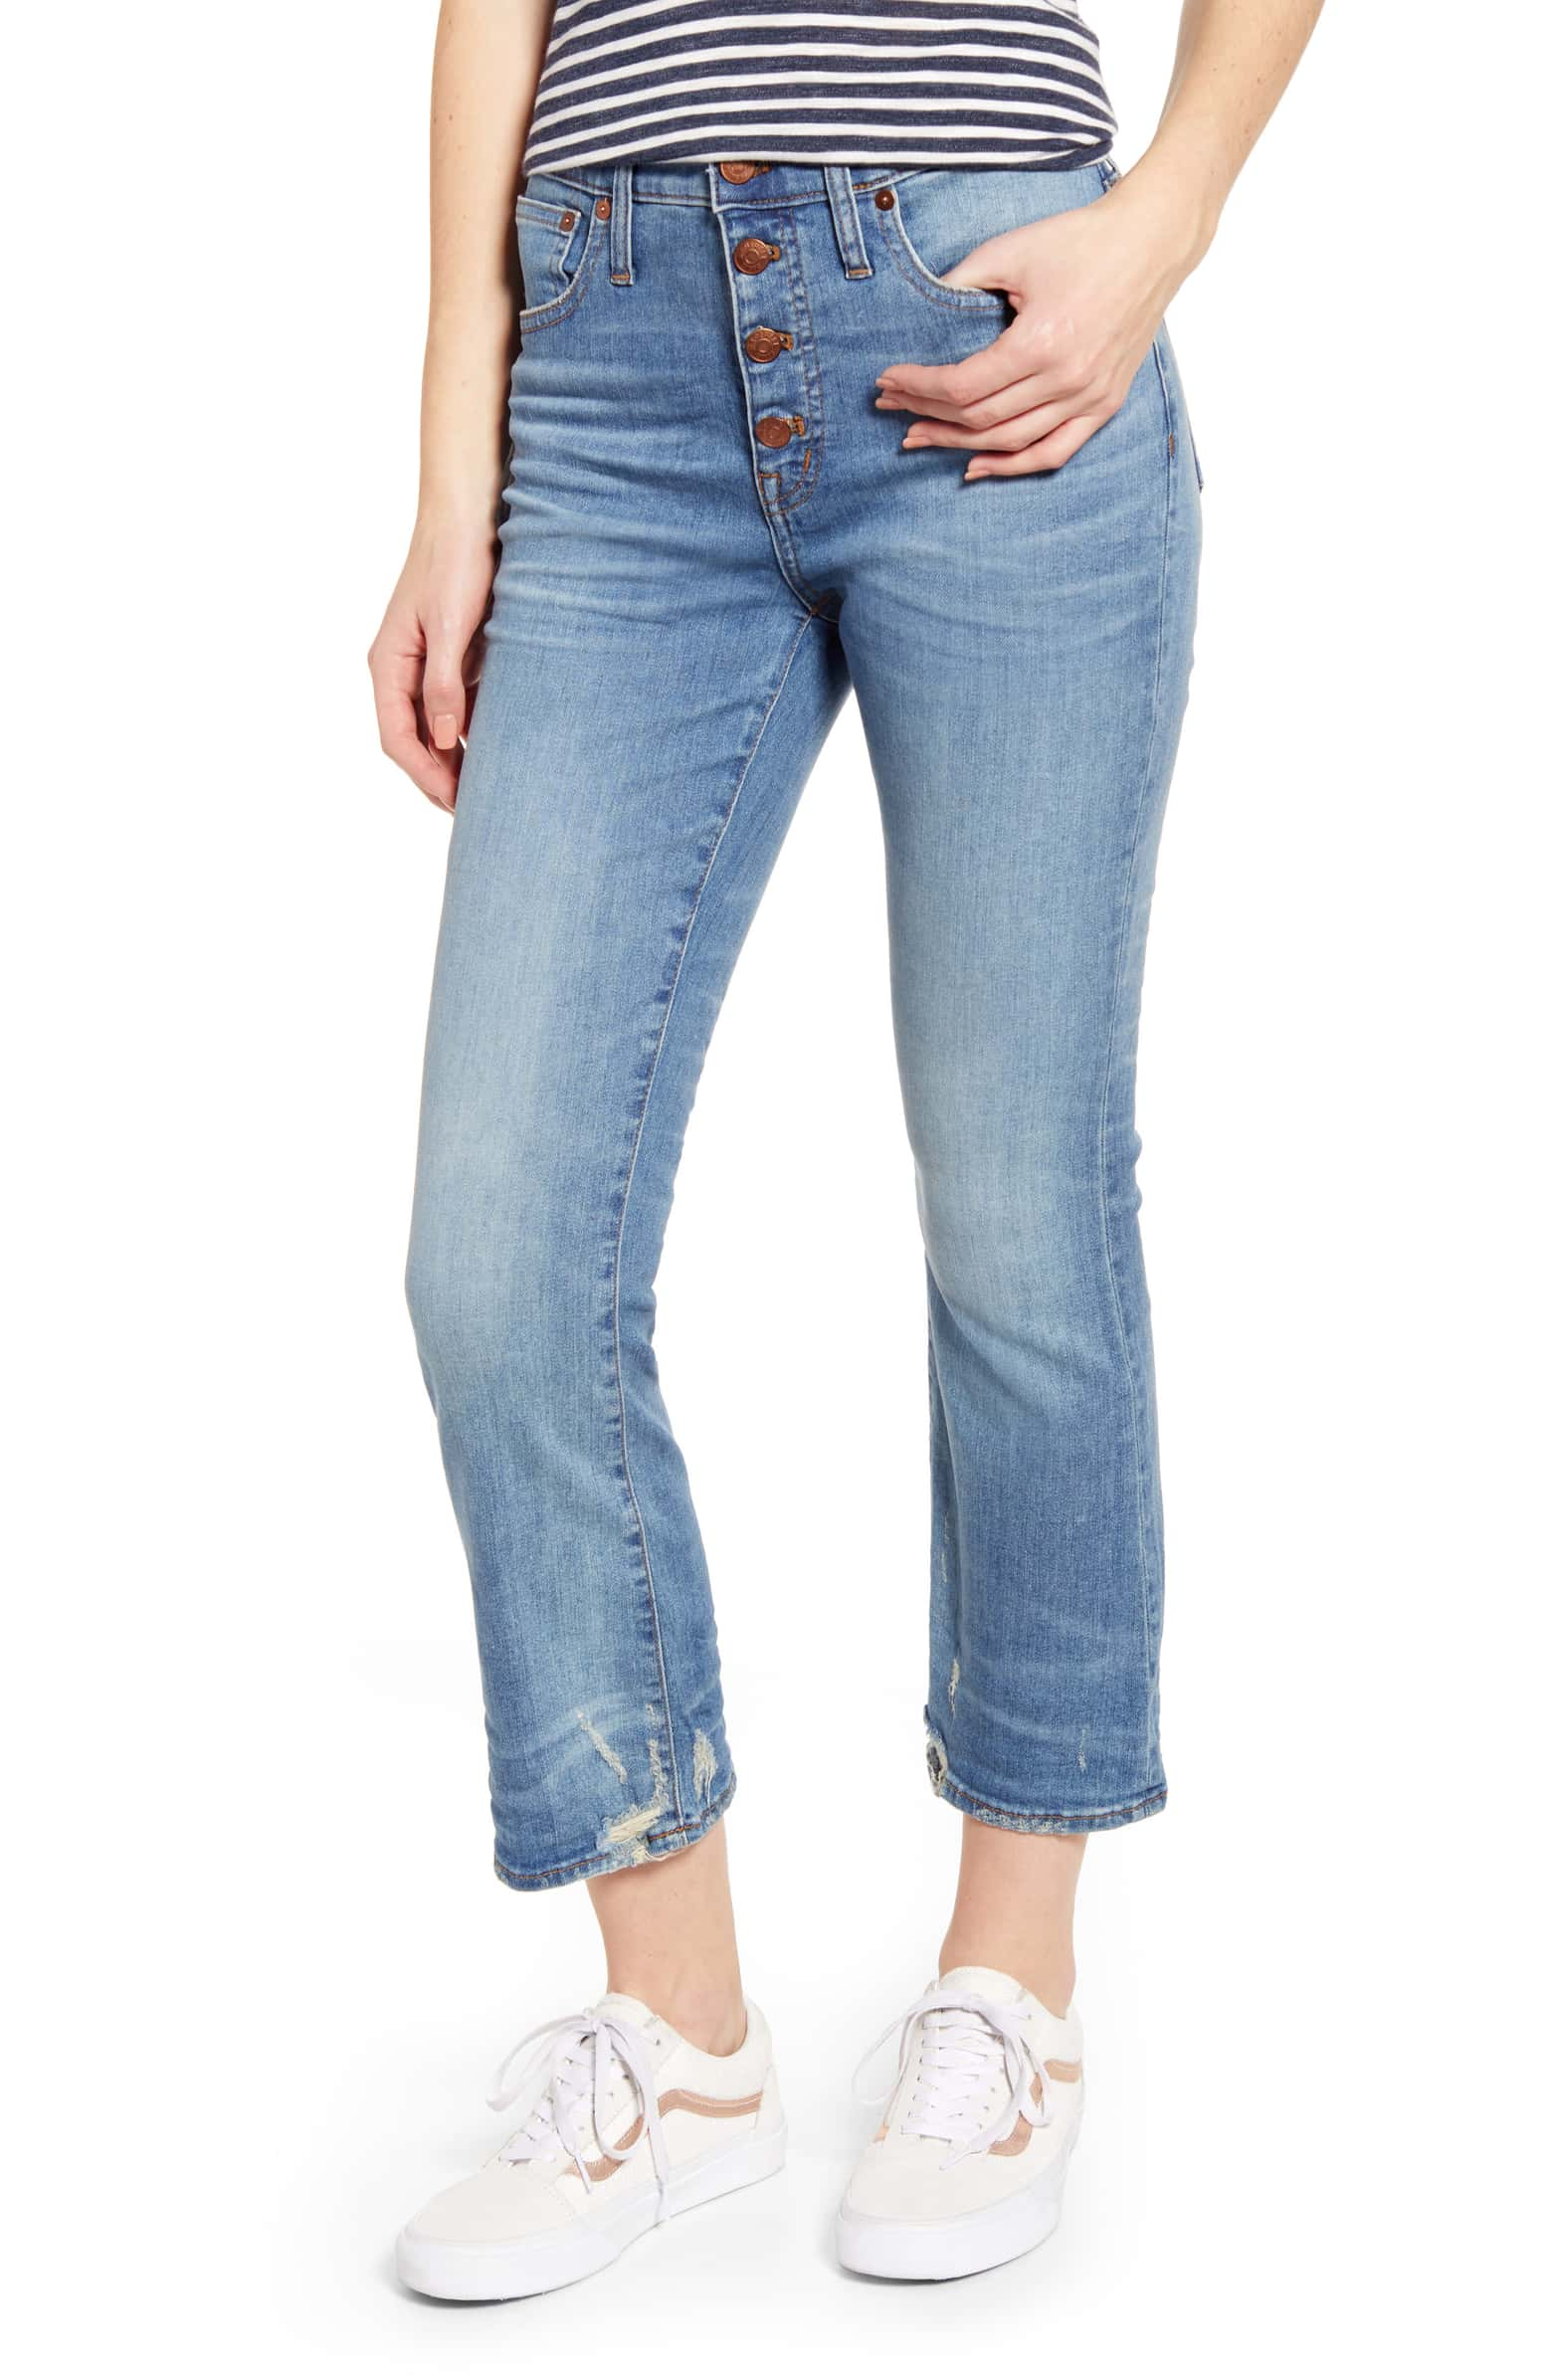 Demi boot cut $65.50 (45% off)